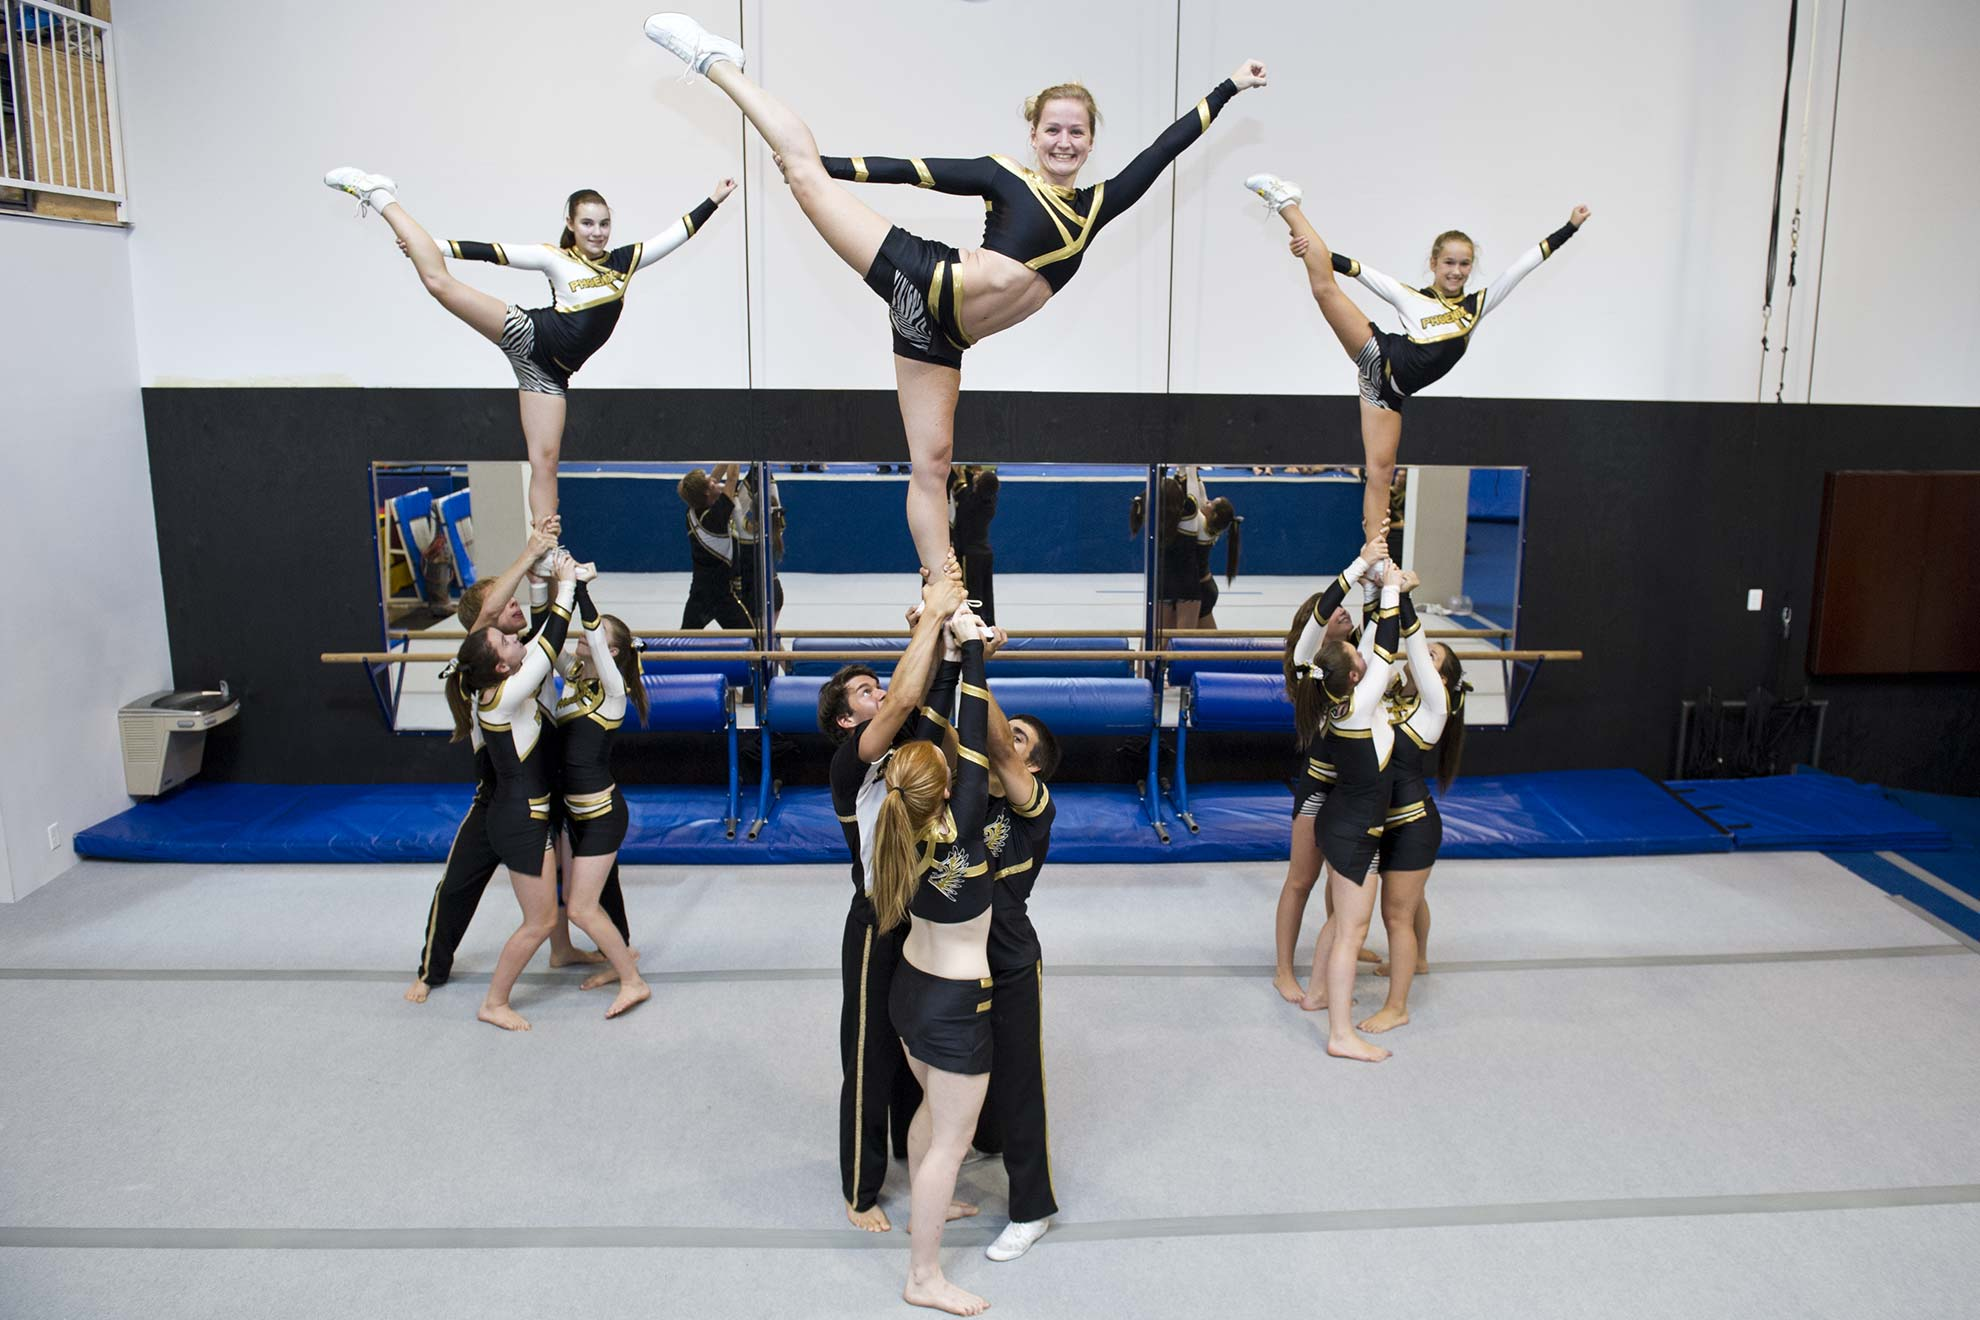 04-studiostudioacrobatique-cheerleading-min